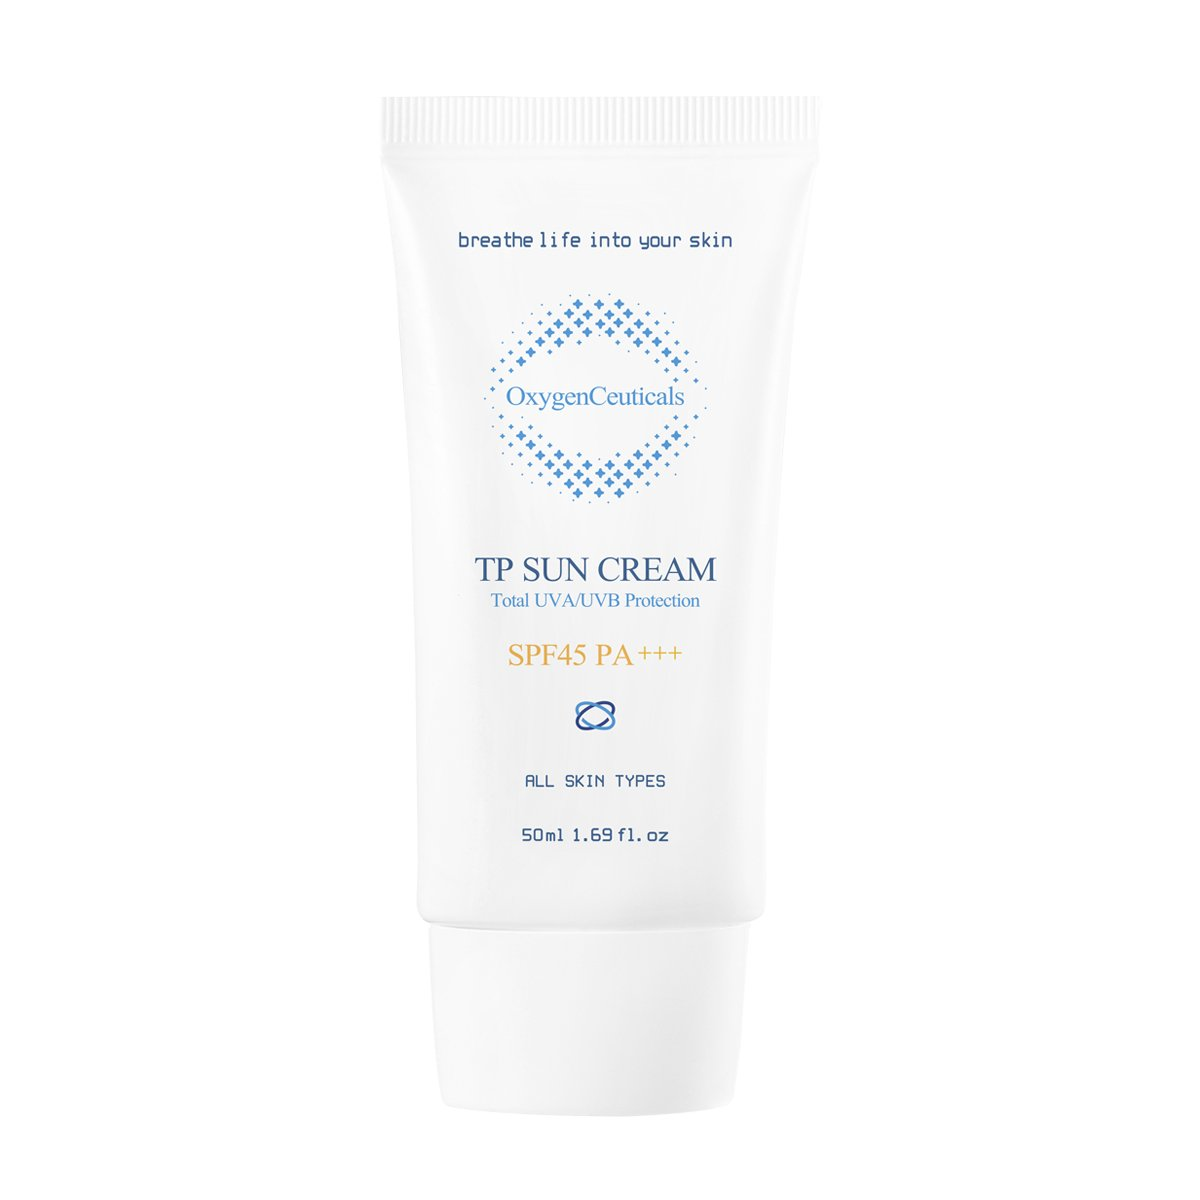 OxygenCeuticals TP Sun Cream SPF 45 Daily Moisturizer with Sunscreen for All Skin Types, Broad-spectrum UVA and UVB protection, 1.69 oz